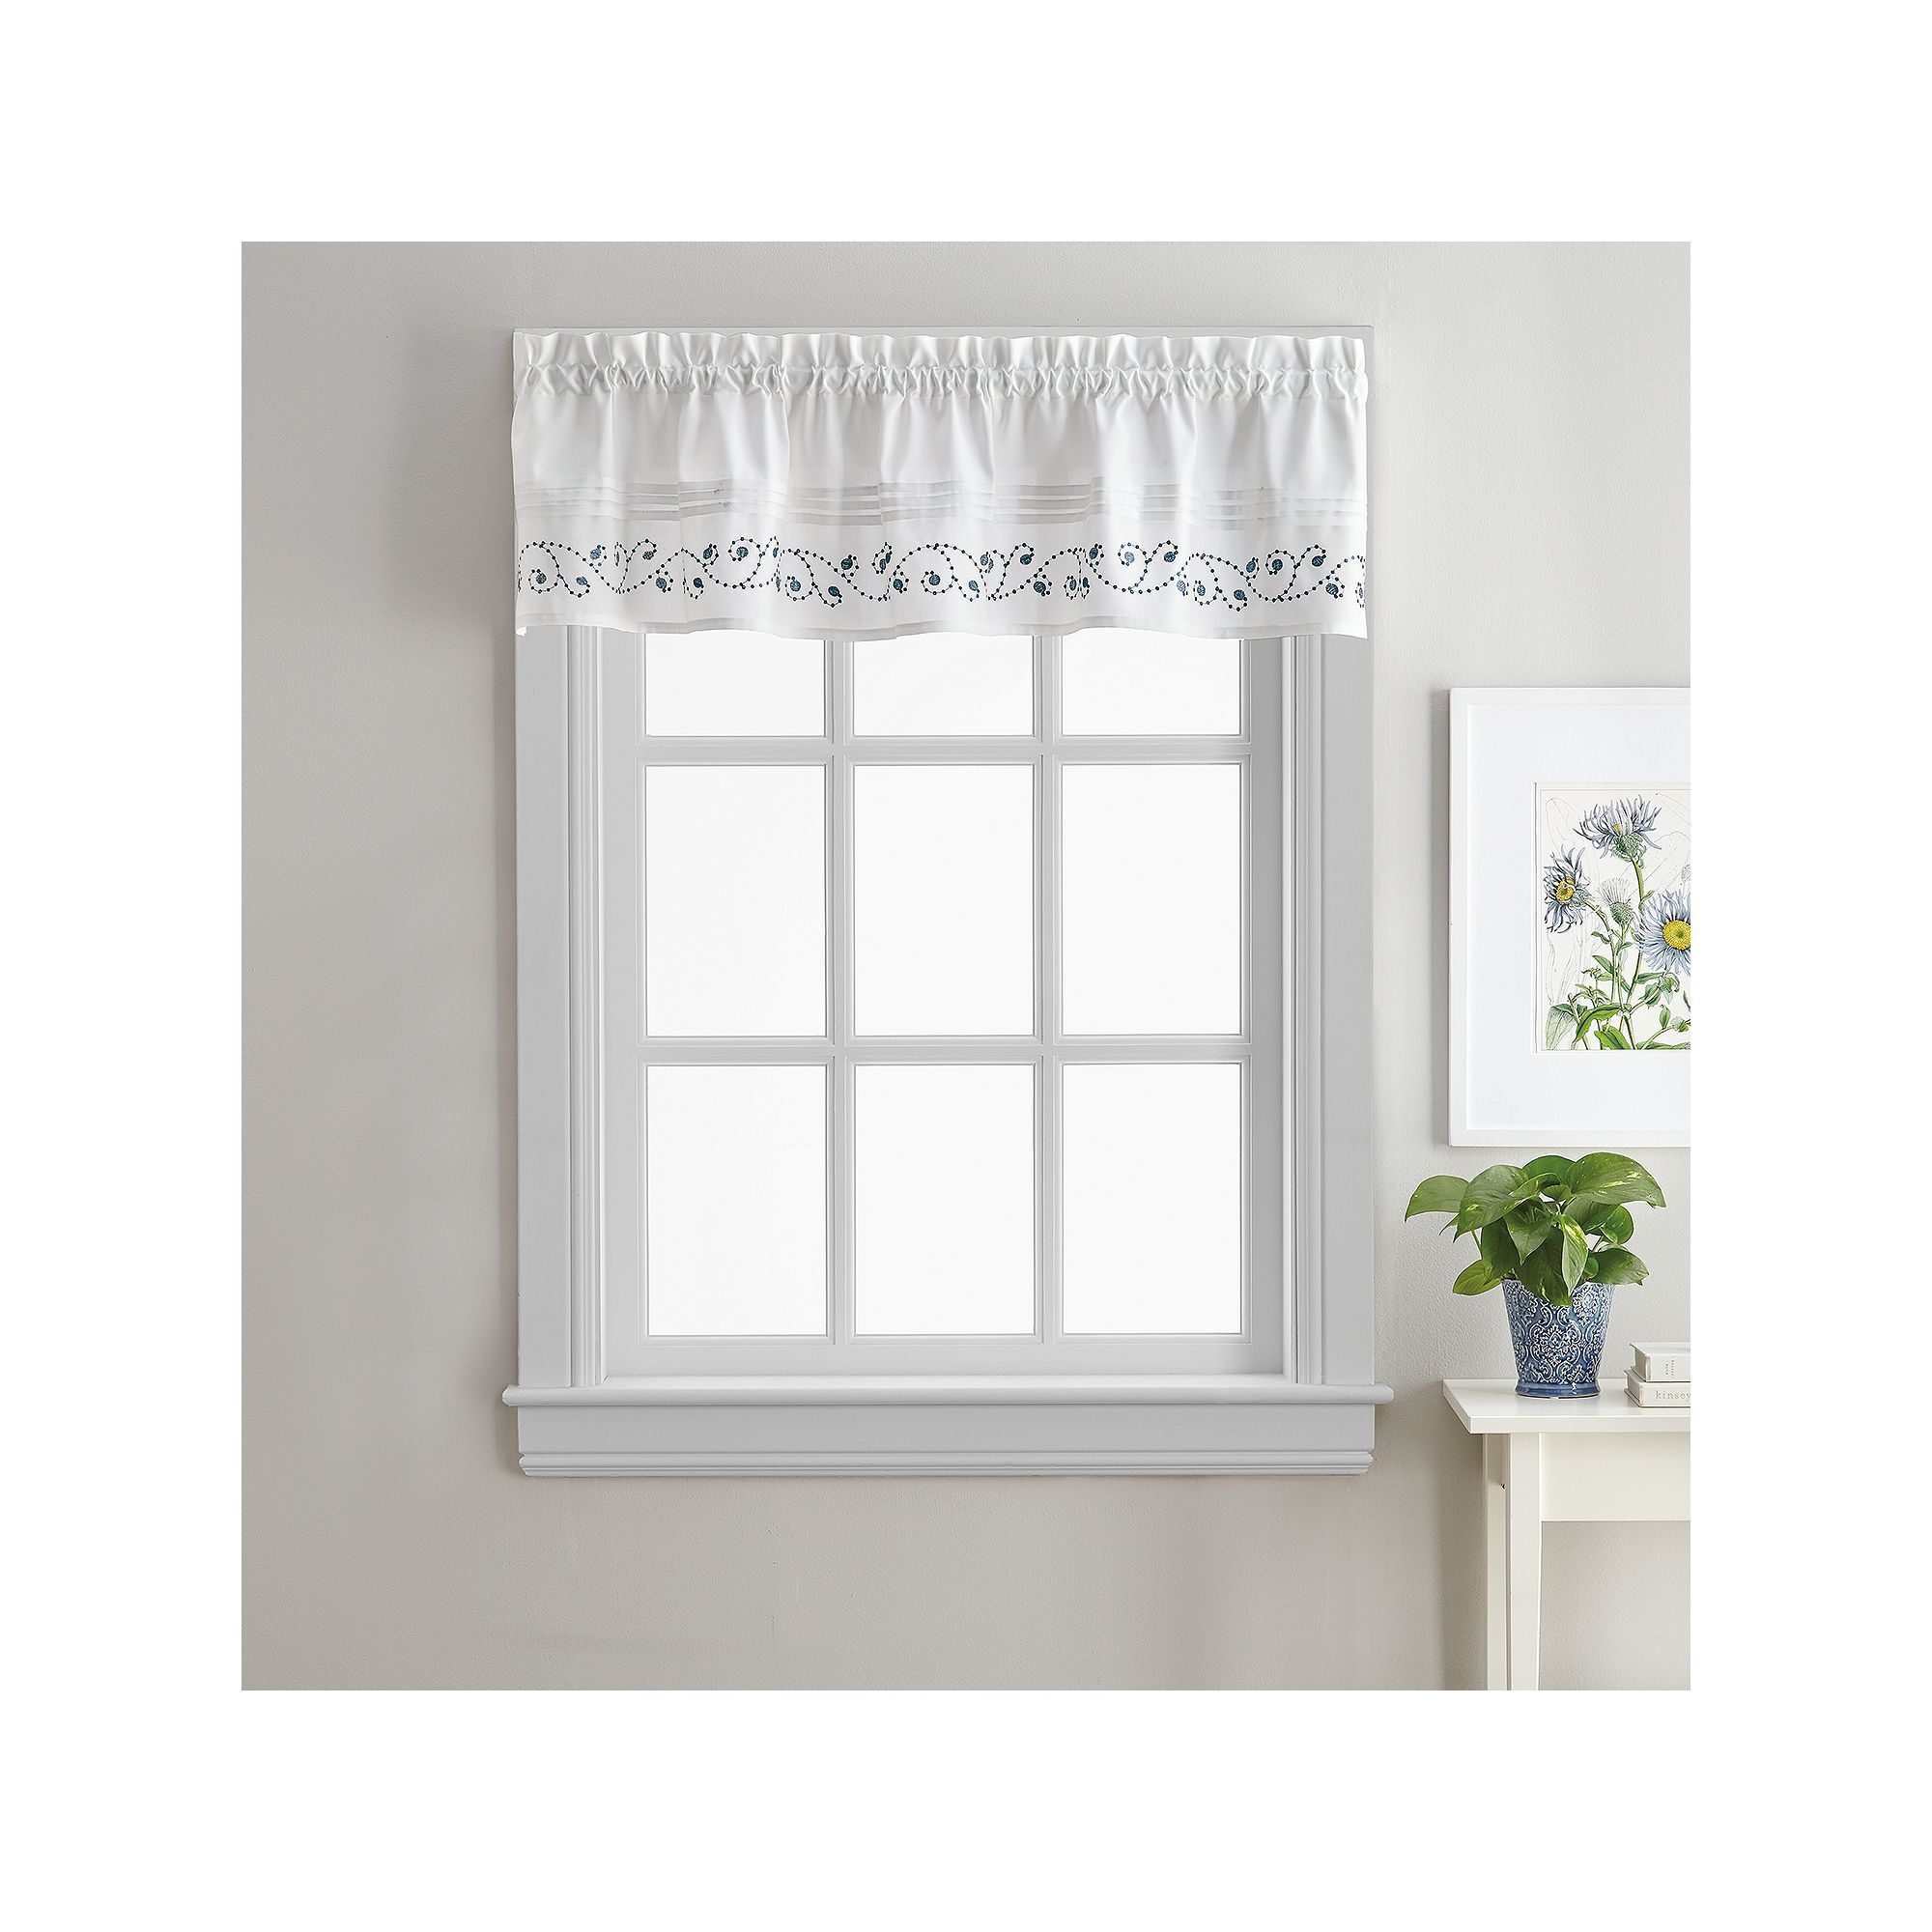 archaicawful slate picture full with valance navy curtain blue curtainsdark ideas of curtainsblue curtains yellow size curtainsnavy and lace light kitchen